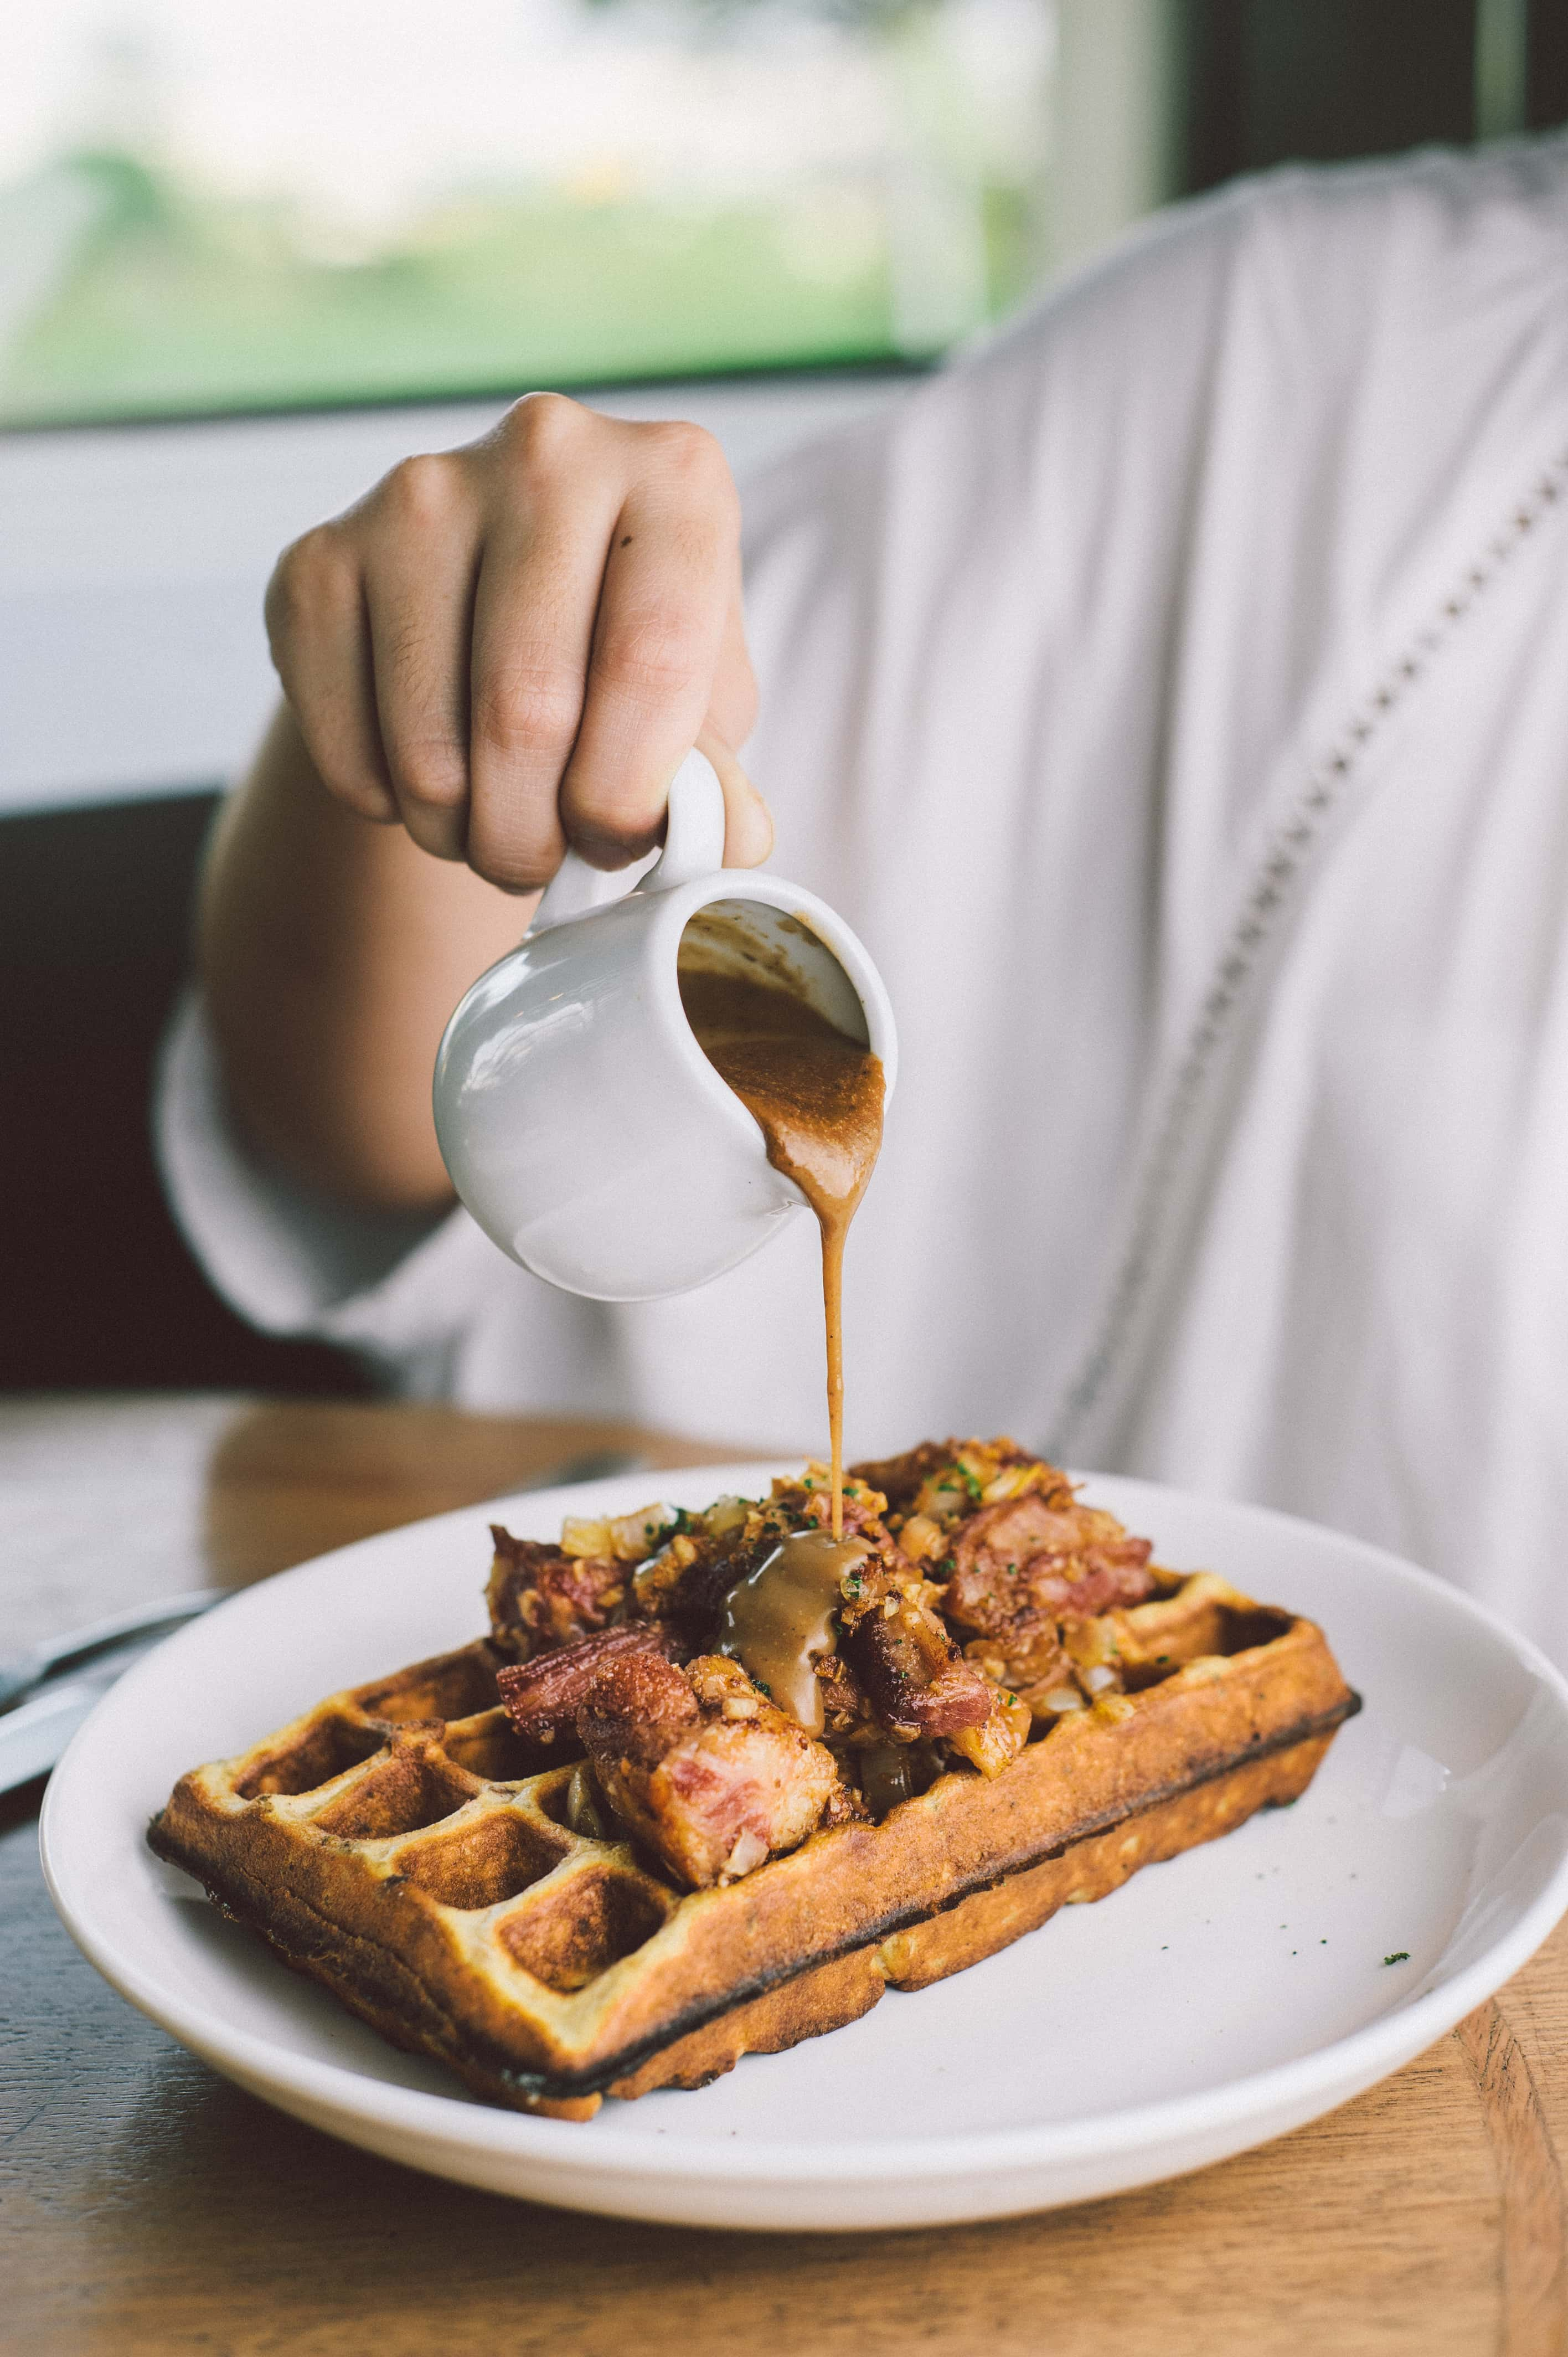 Porridge waffles with home-cured beef and peppercorn gravy